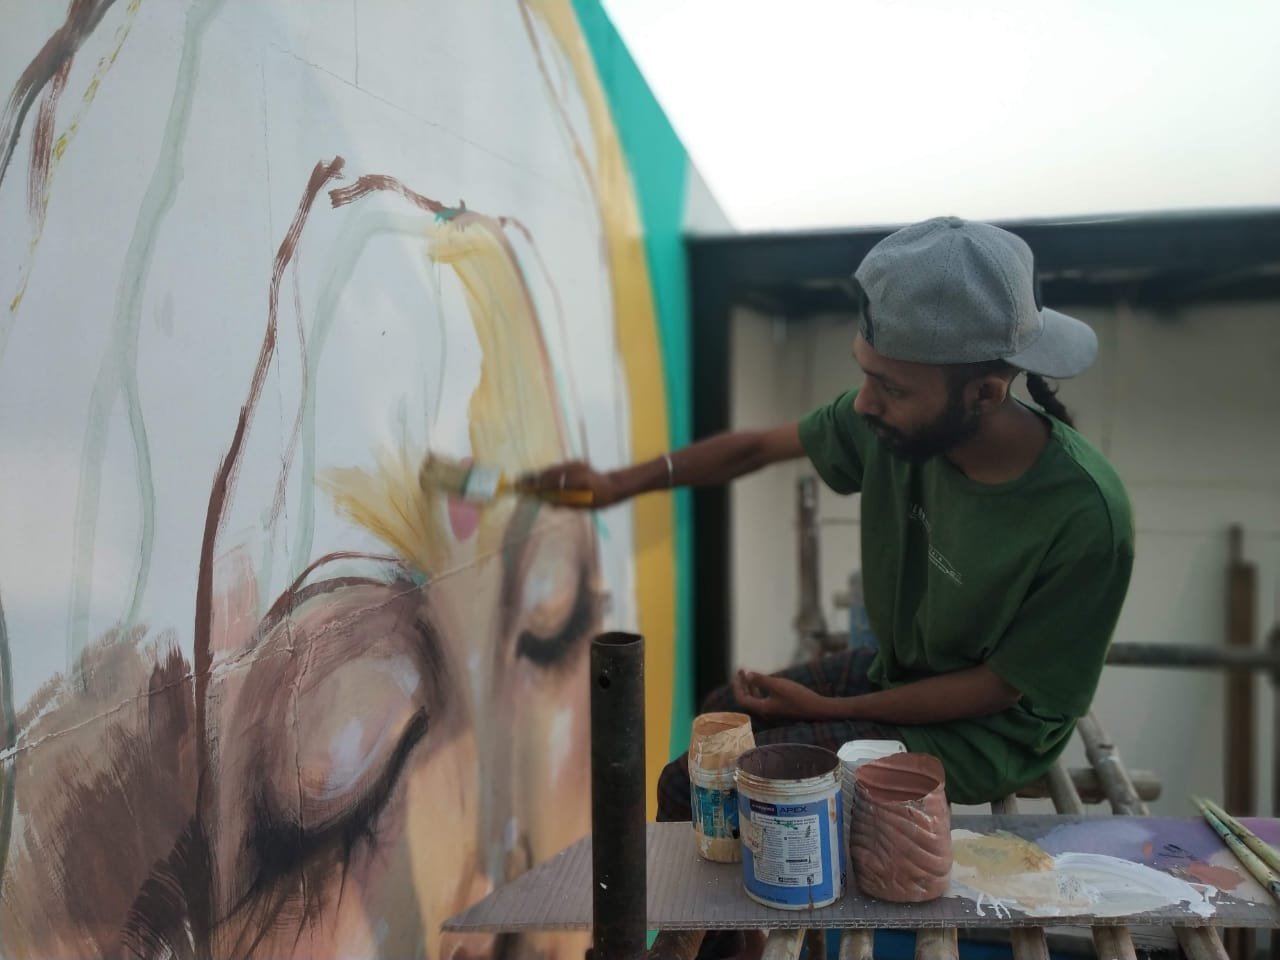 Aftab painting a portrait in New Delhi